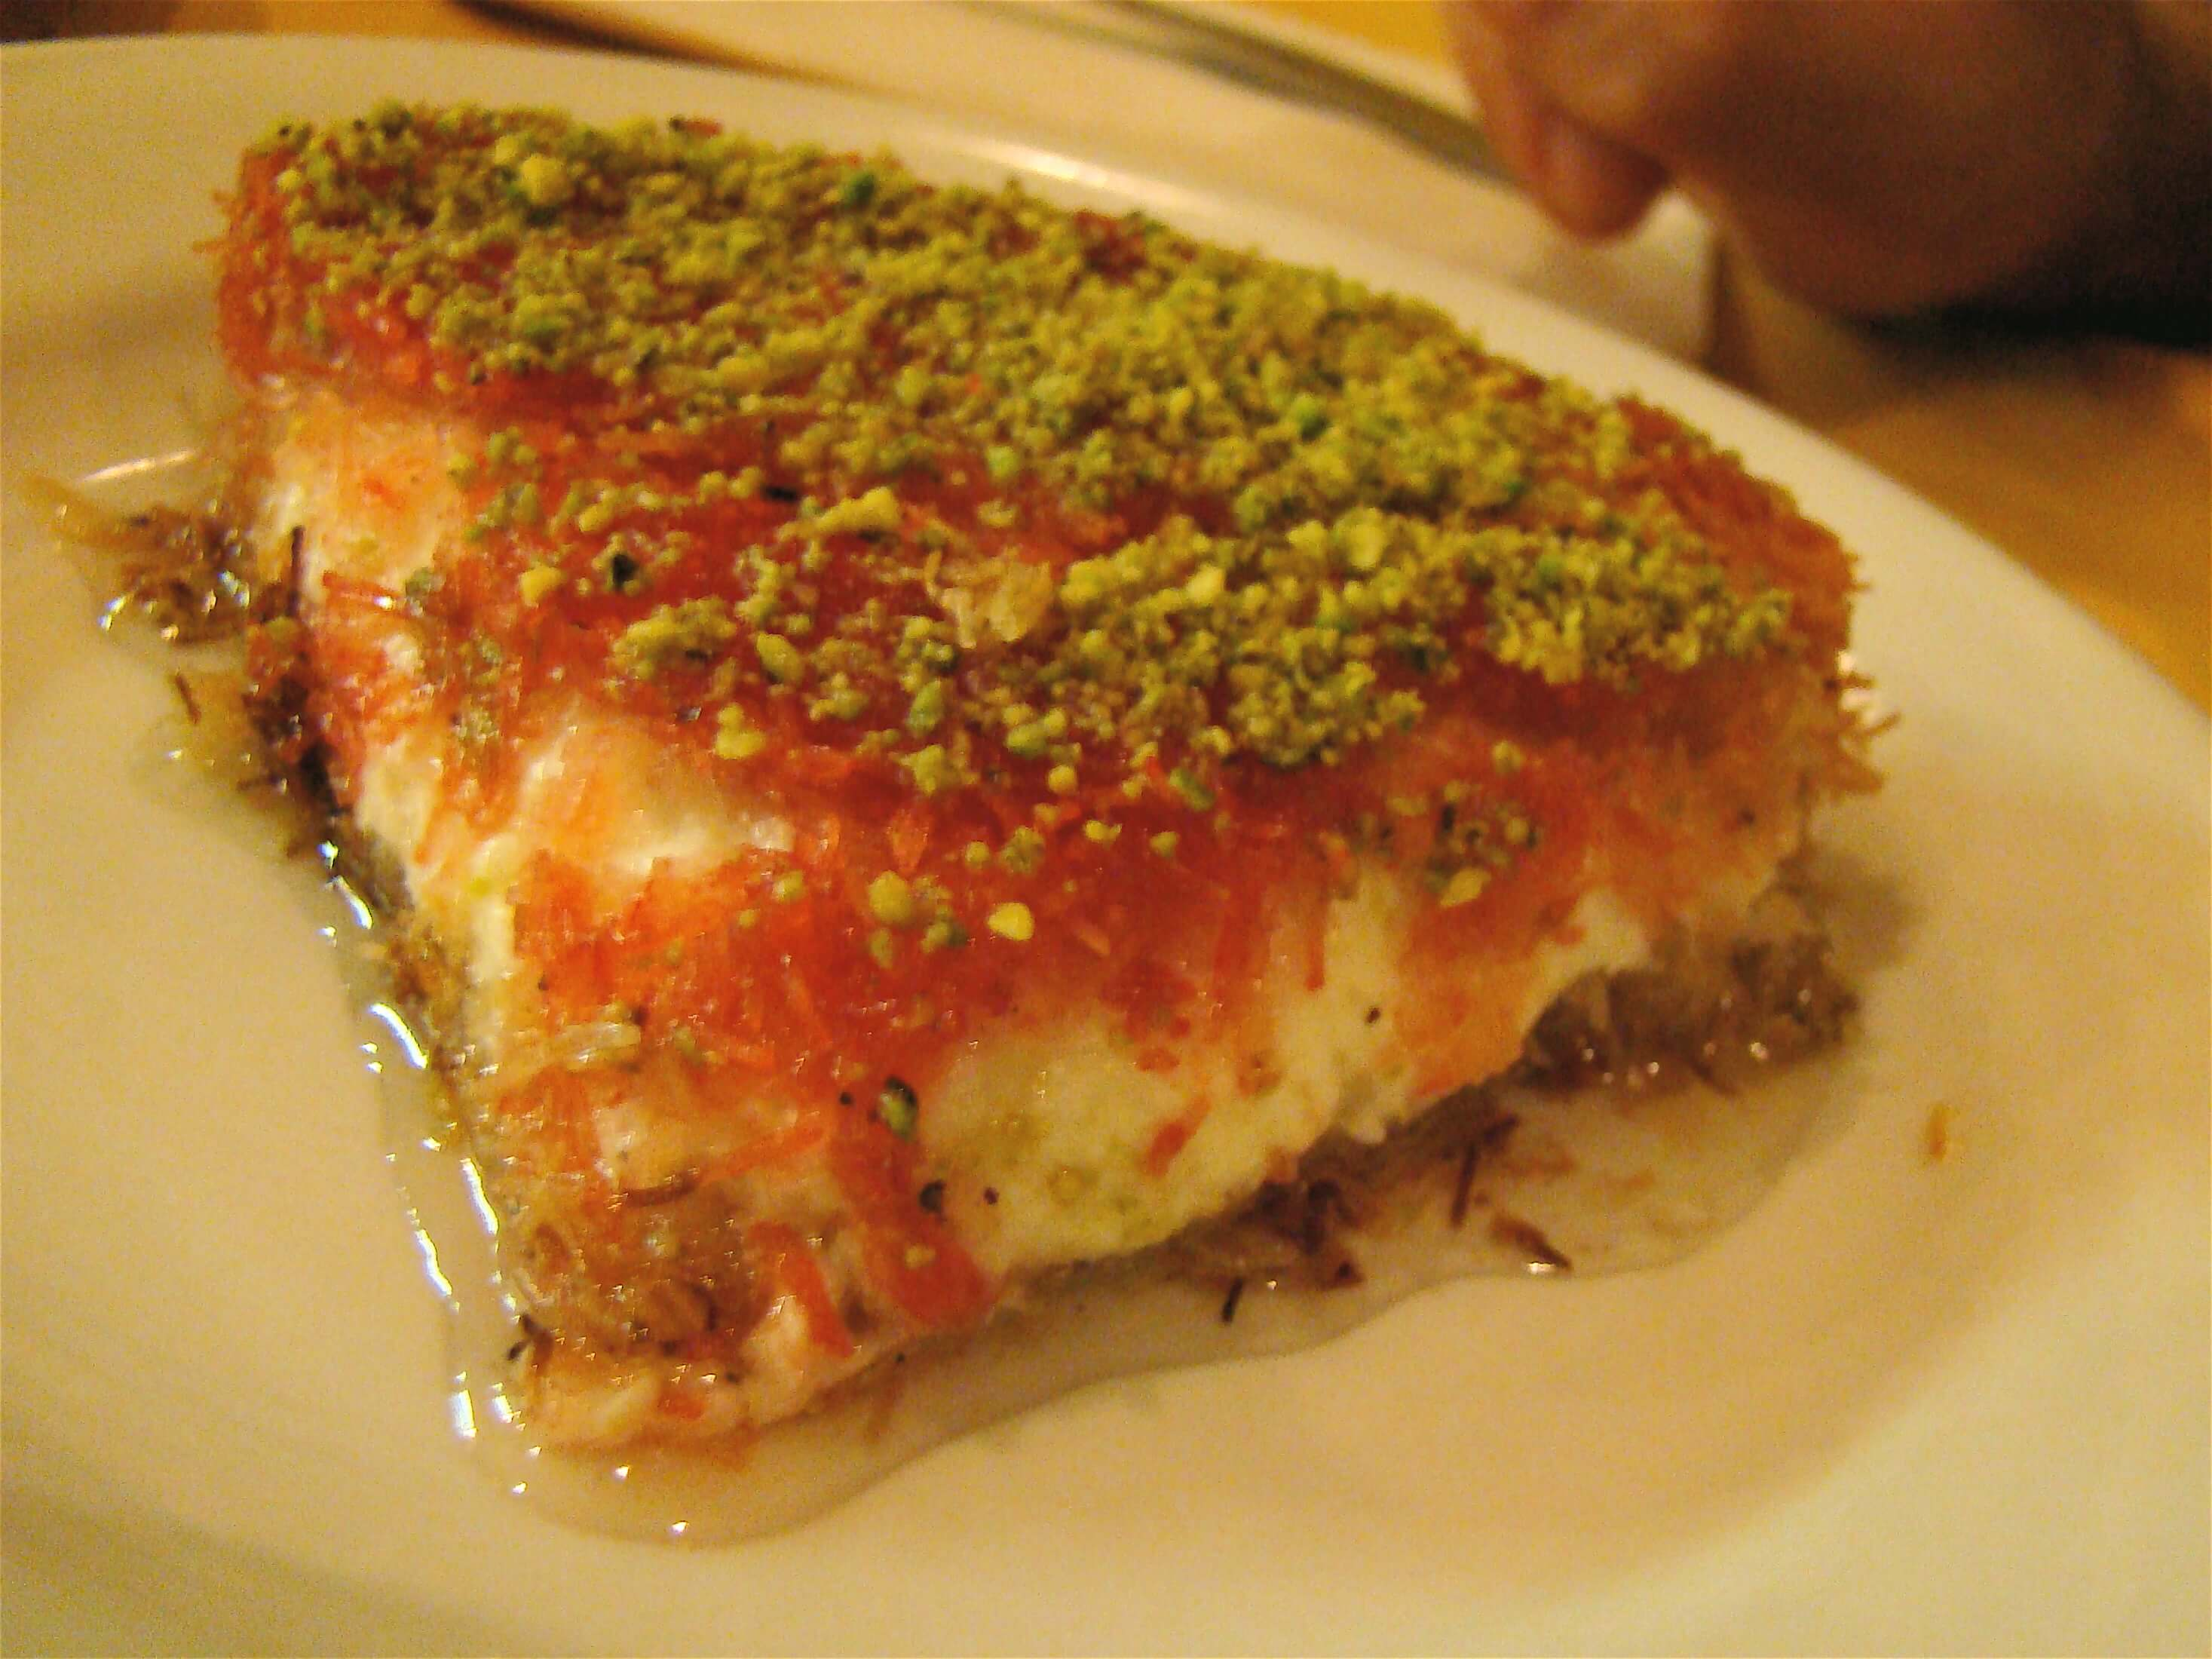 Sweets Please, A Quick Look to Arabic Desserts